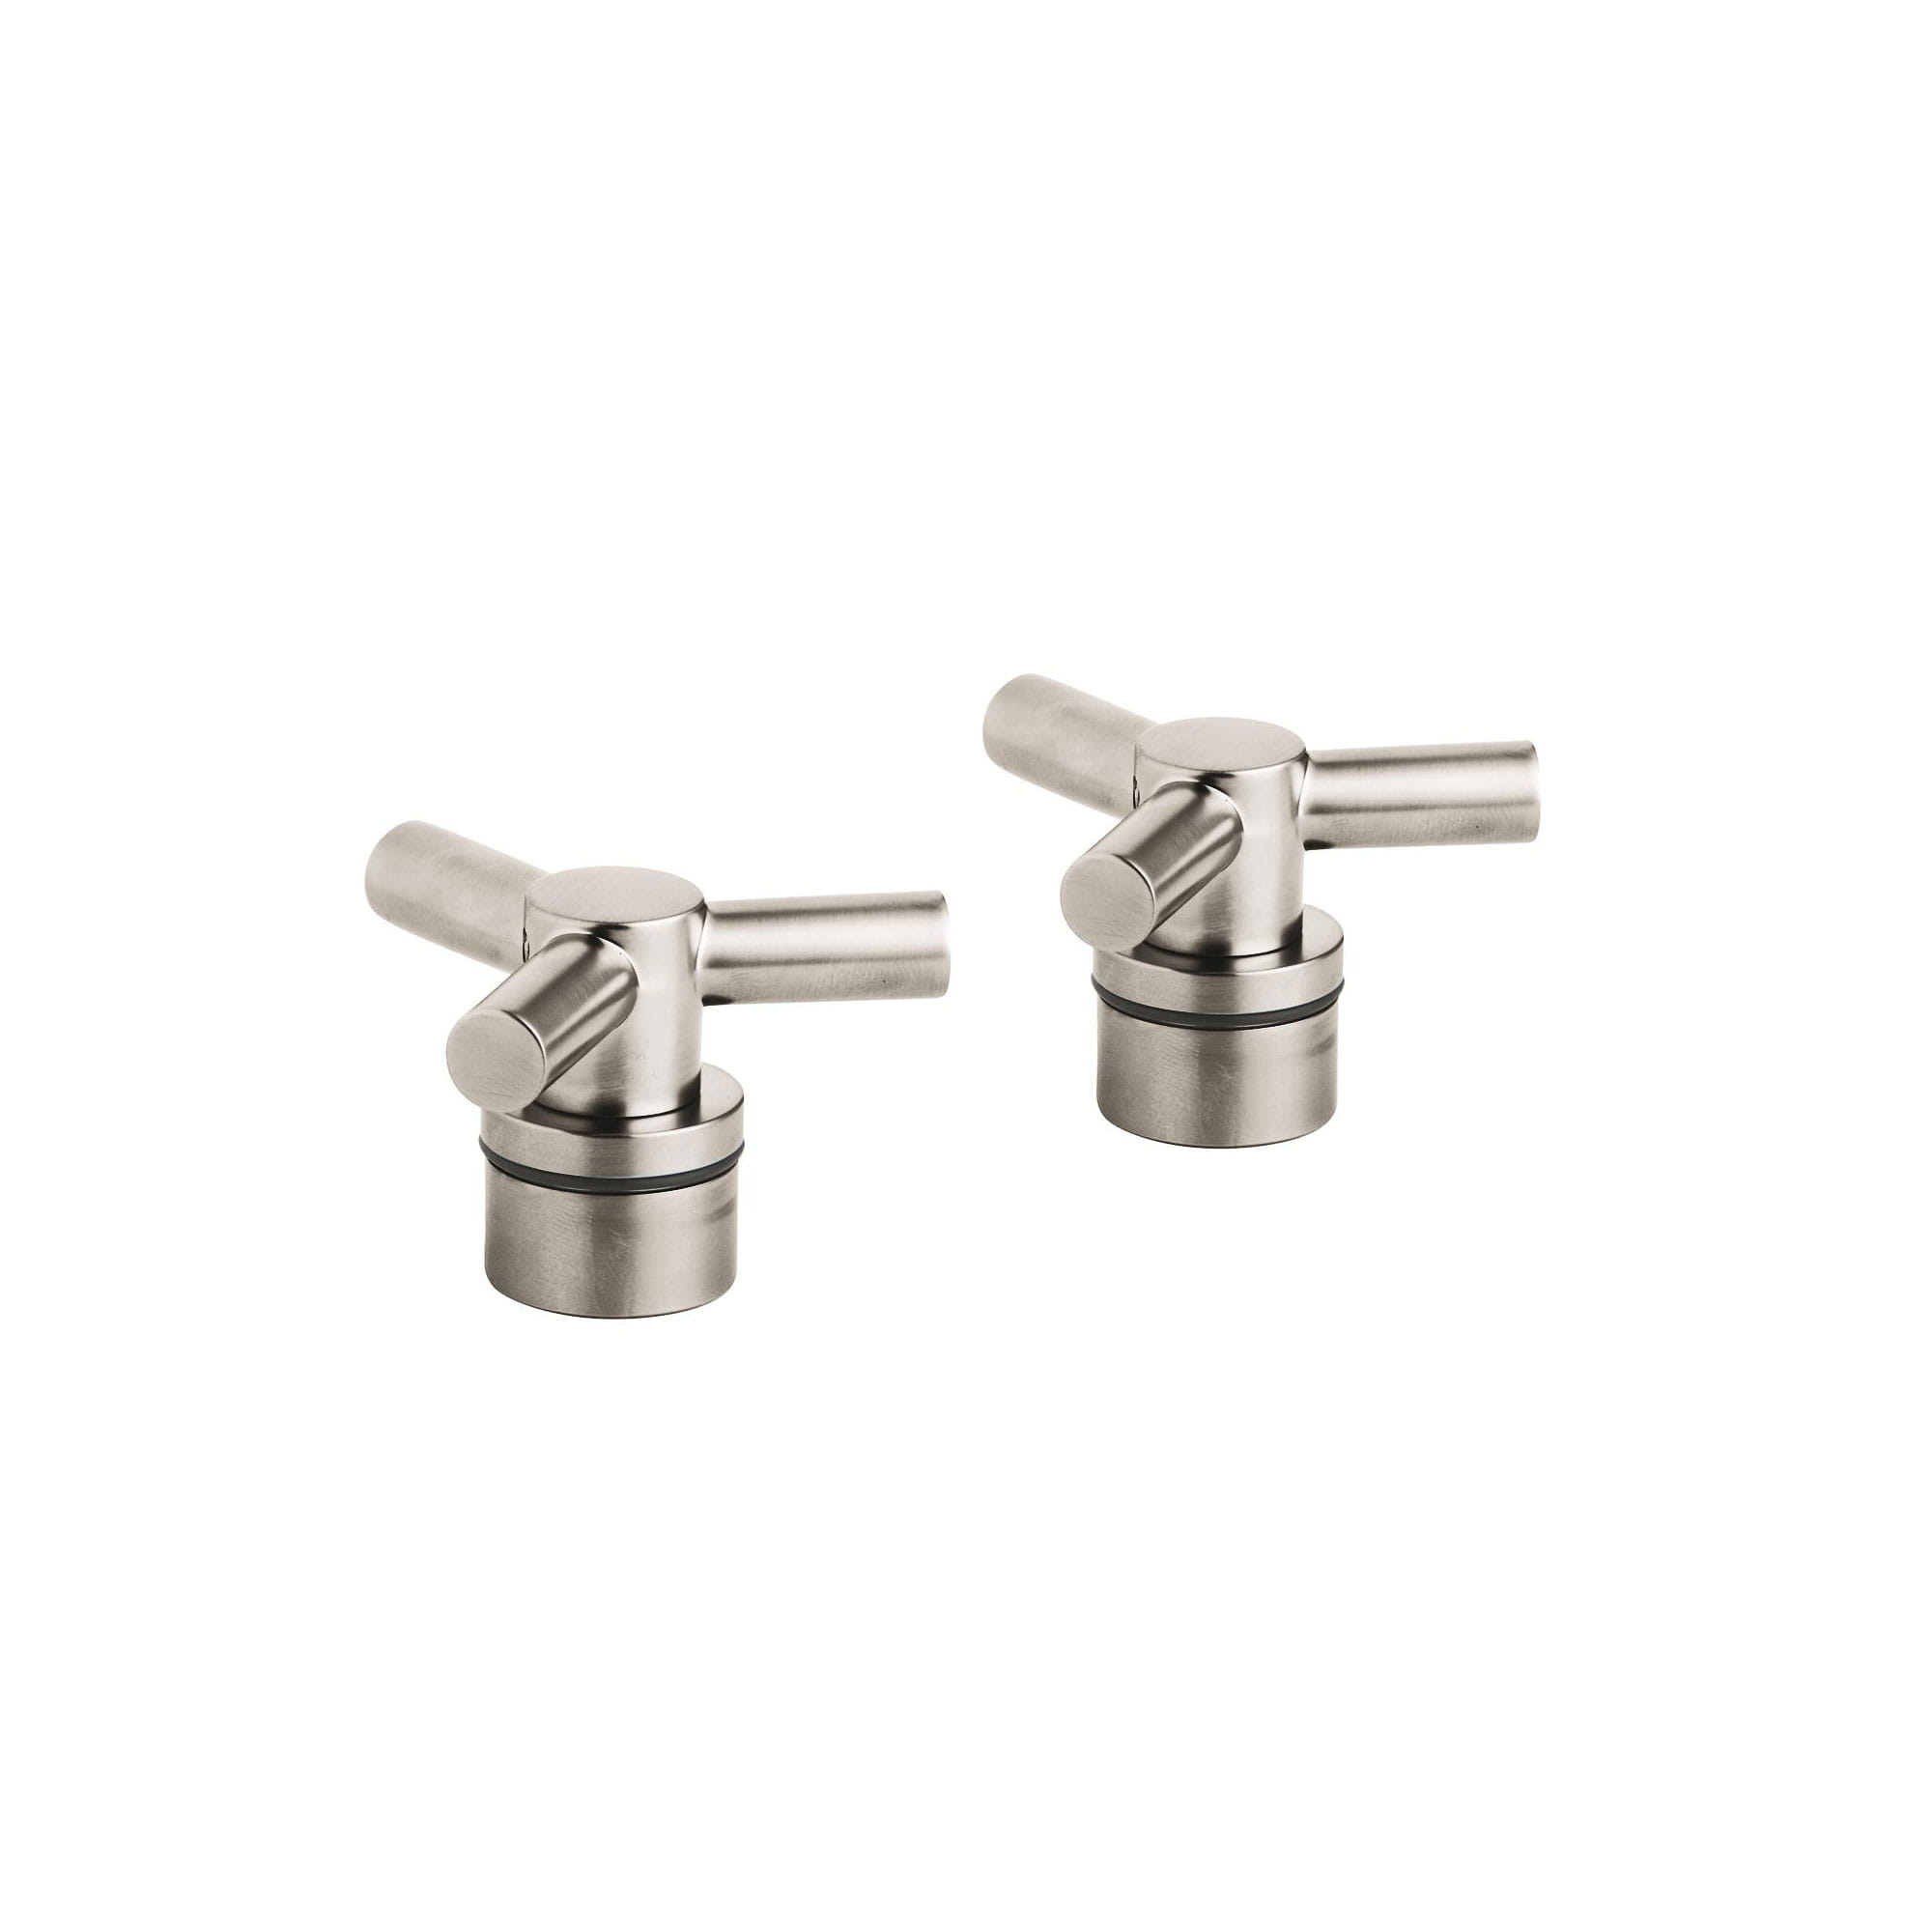 Tri Spoke Handles Pair GROHE BRUSHED NICKEL